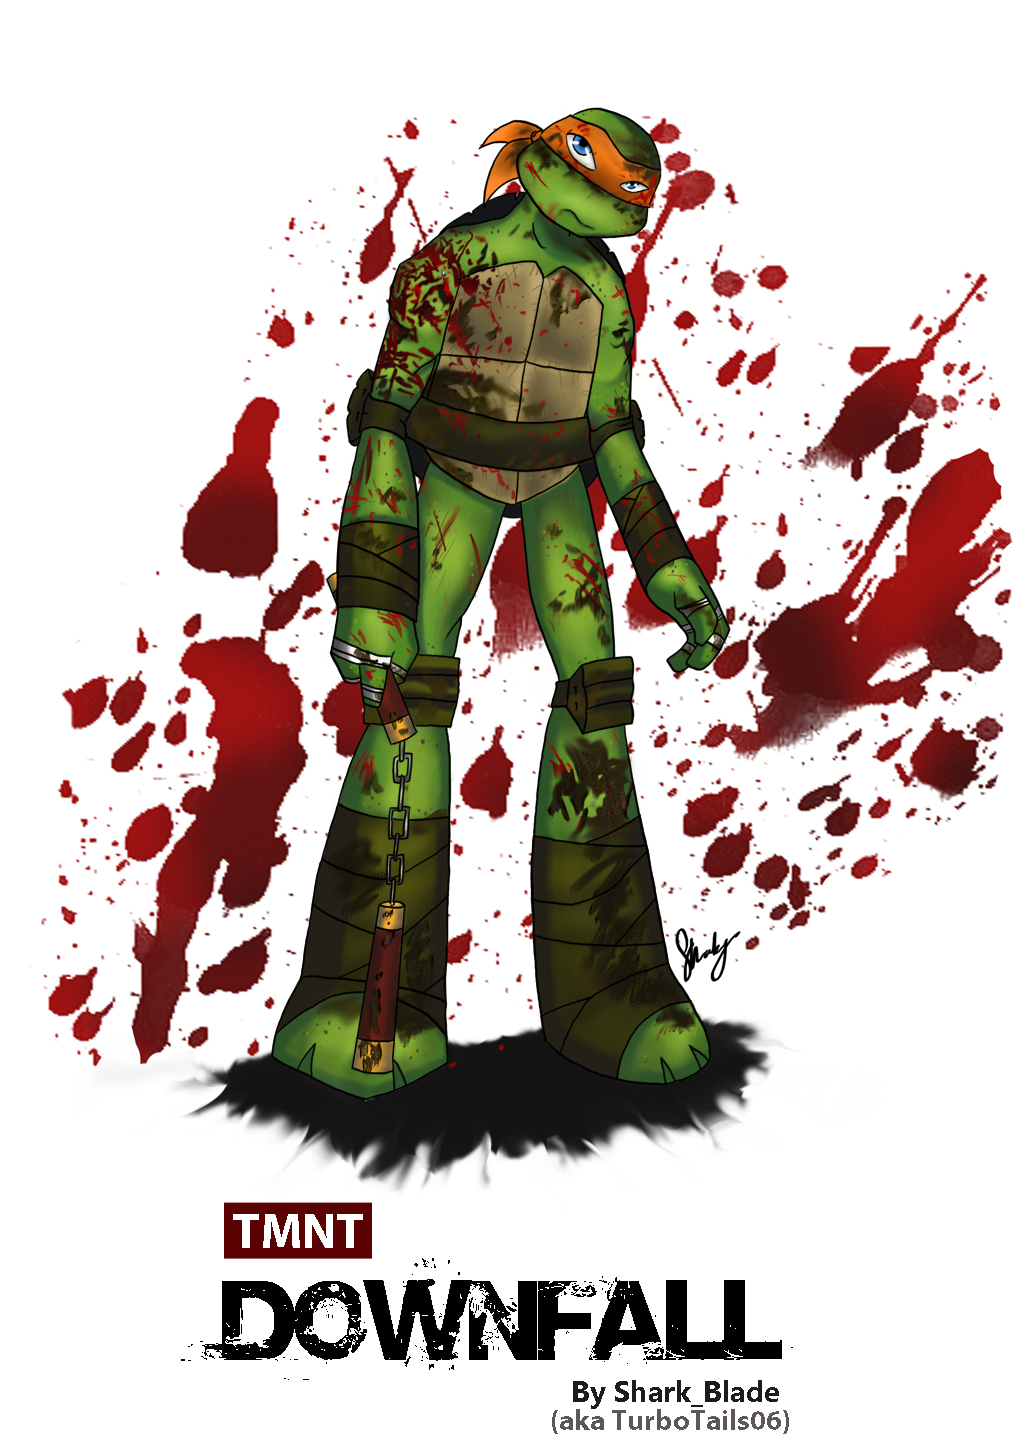 TMNT Downfall - Michelangelo by TurboTails06